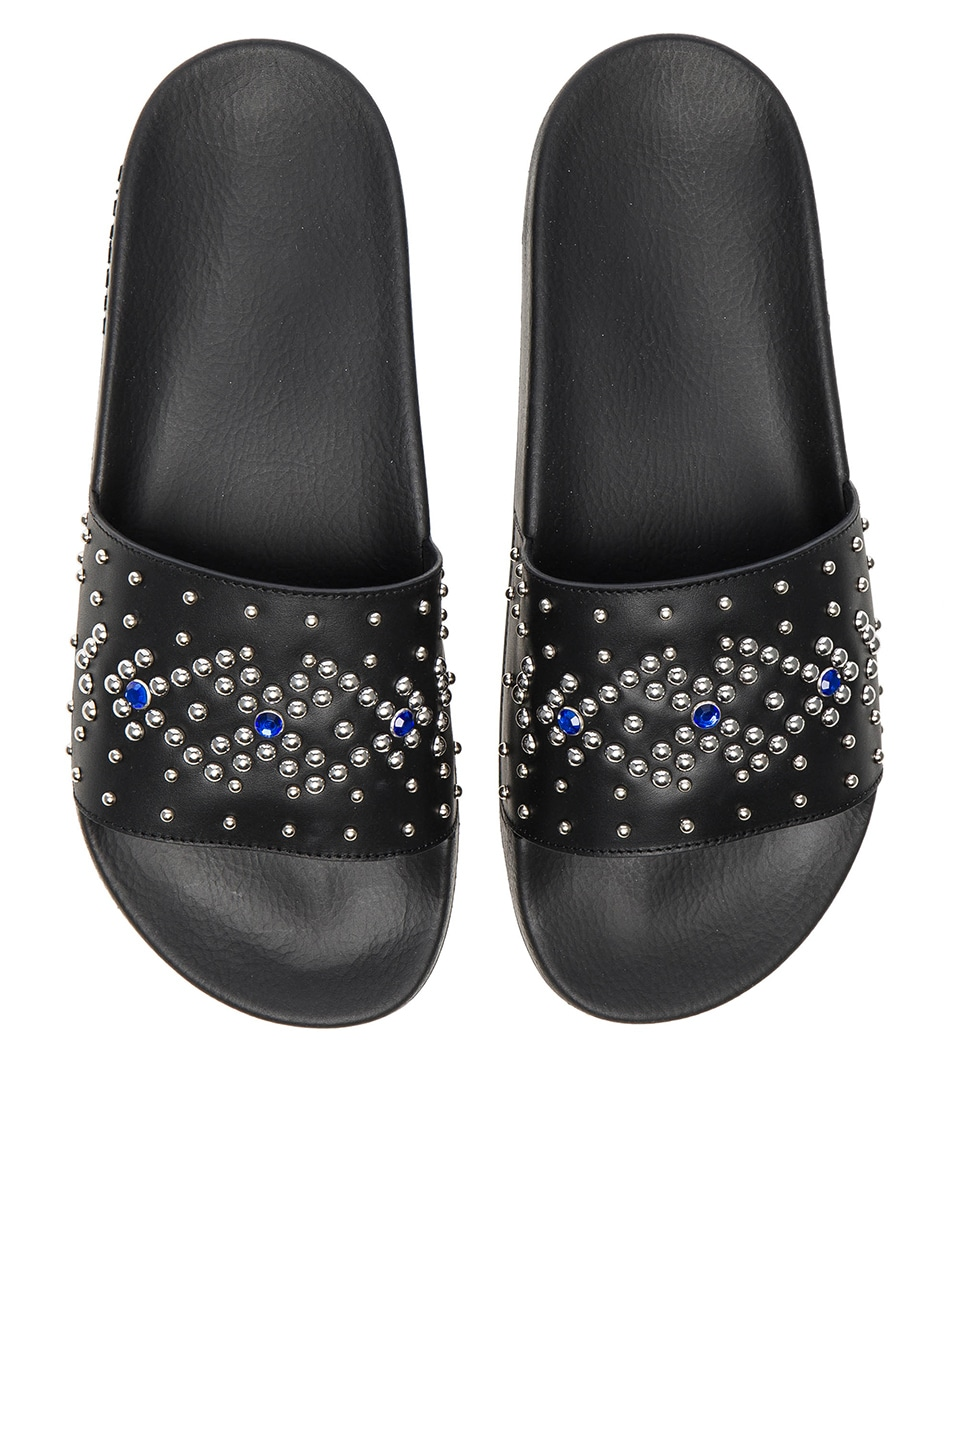 a8020239c07 Image 1 of Givenchy Studded Slide Sandals in Black   Blue